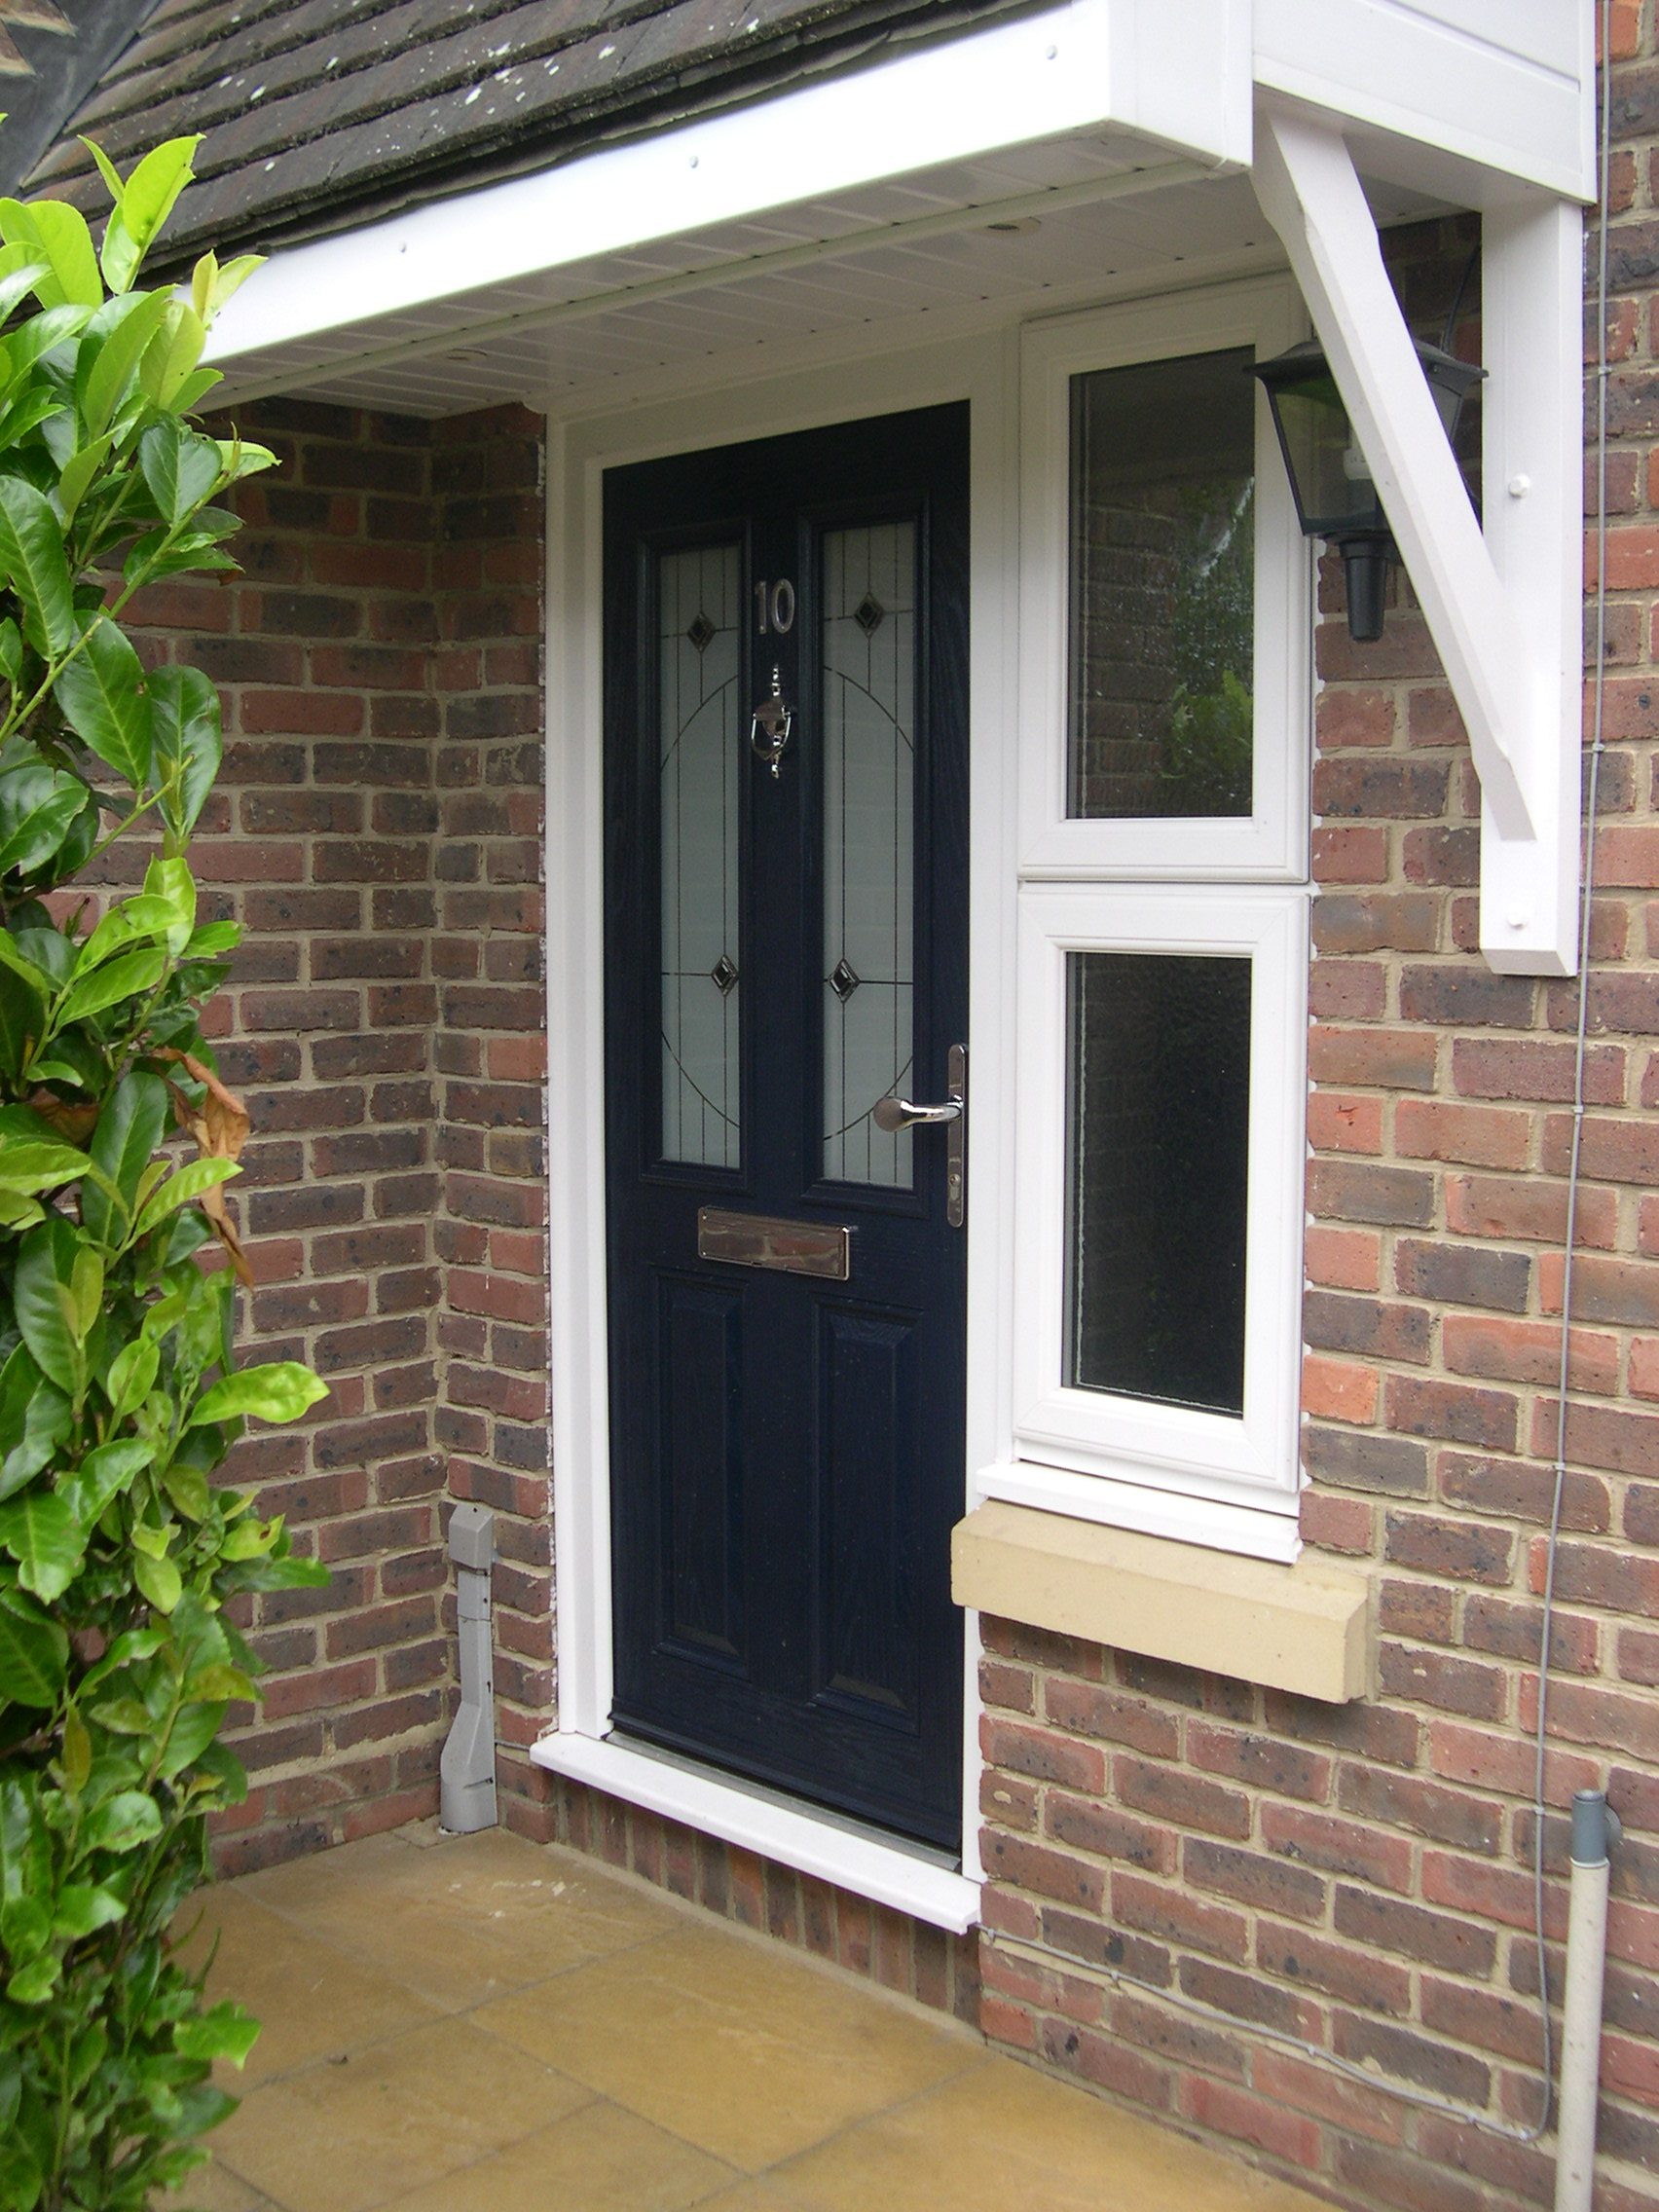 composite door braintree & Door Porch \u0026 Handcrafted And Wooden Pegged Entrance Porch ... Pezcame.Com